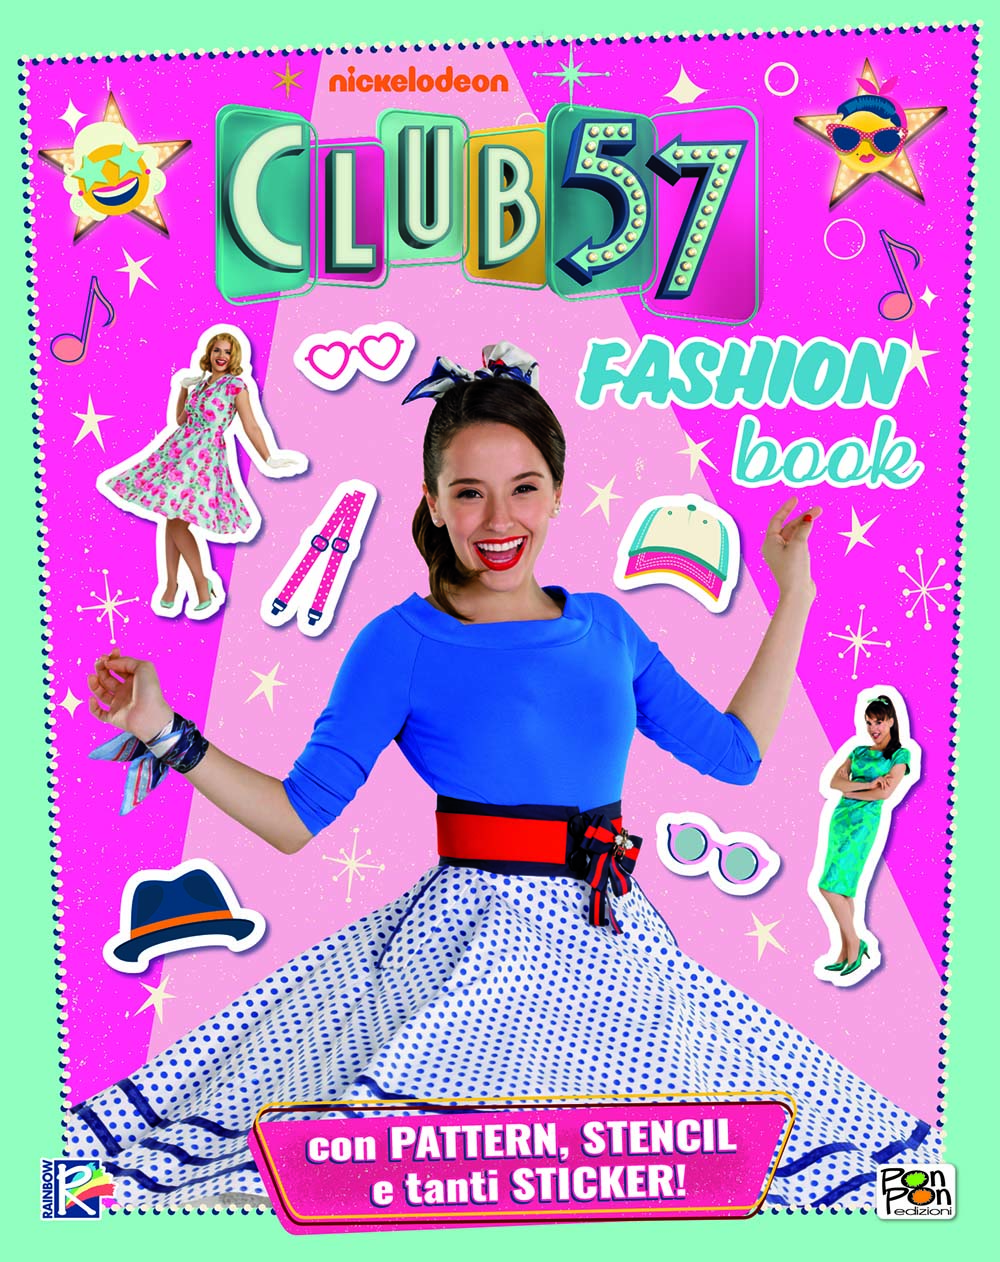 Fashion Book - Club57